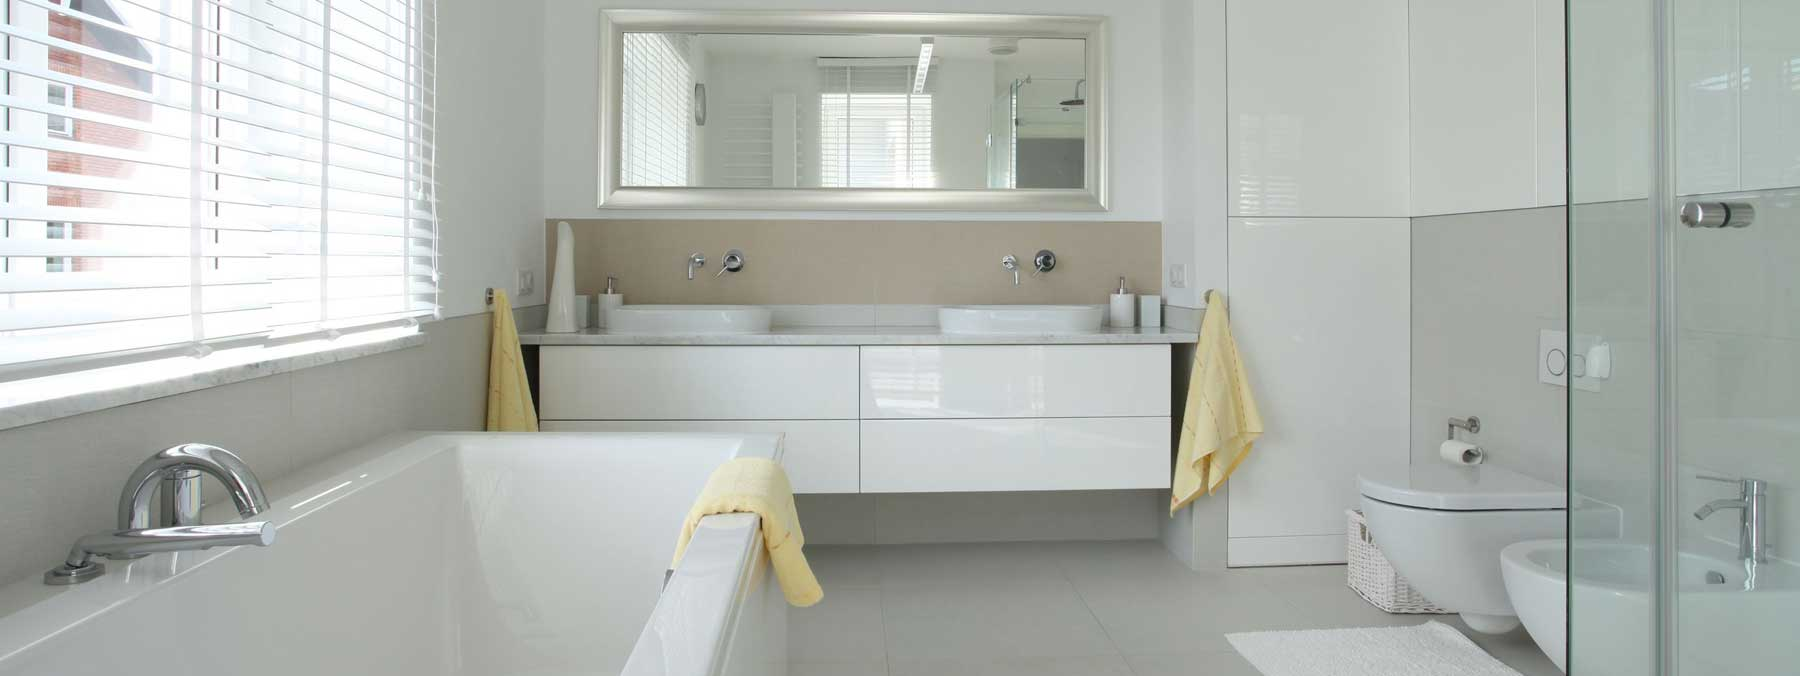 New 50 bathroom renovations sydney cost design ideas of for Complete bathroom renovations